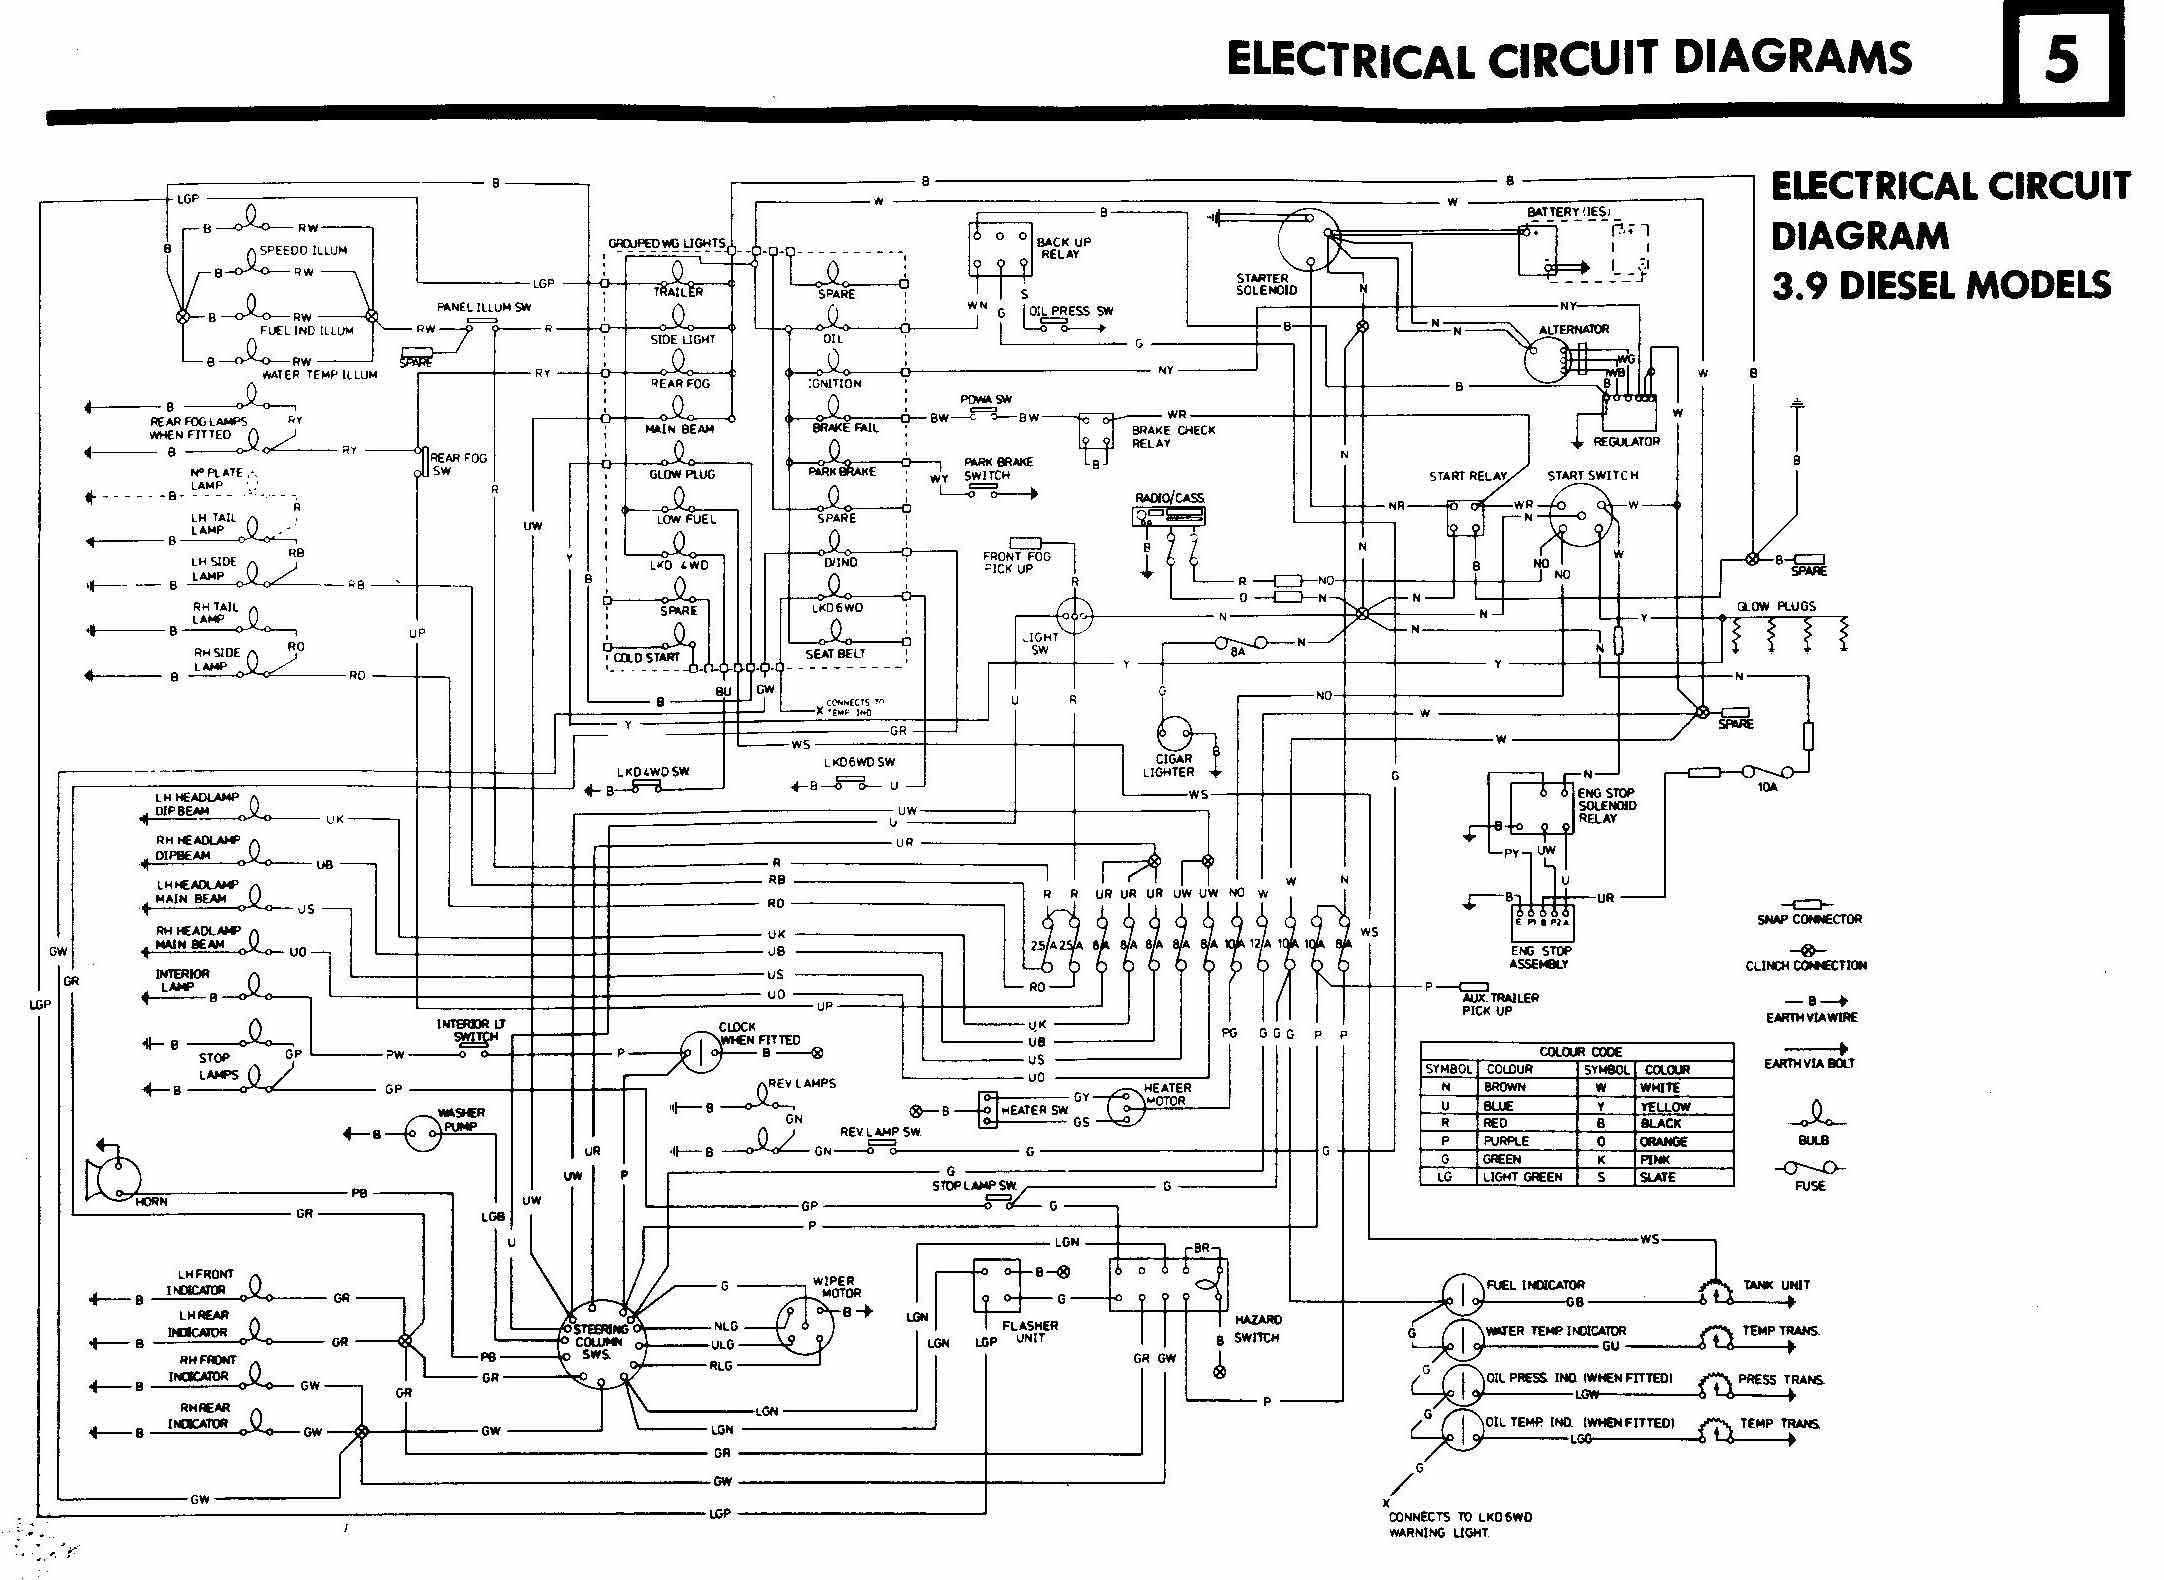 [SCHEMATICS_44OR]  Rover Colt 8 Wiring Diagram - 2010 Land Rover Lr2 Fuse Box Diagram for Wiring  Diagram Schematics | Rover R770 Wiring Diagram |  | Wiring Diagram Schematics